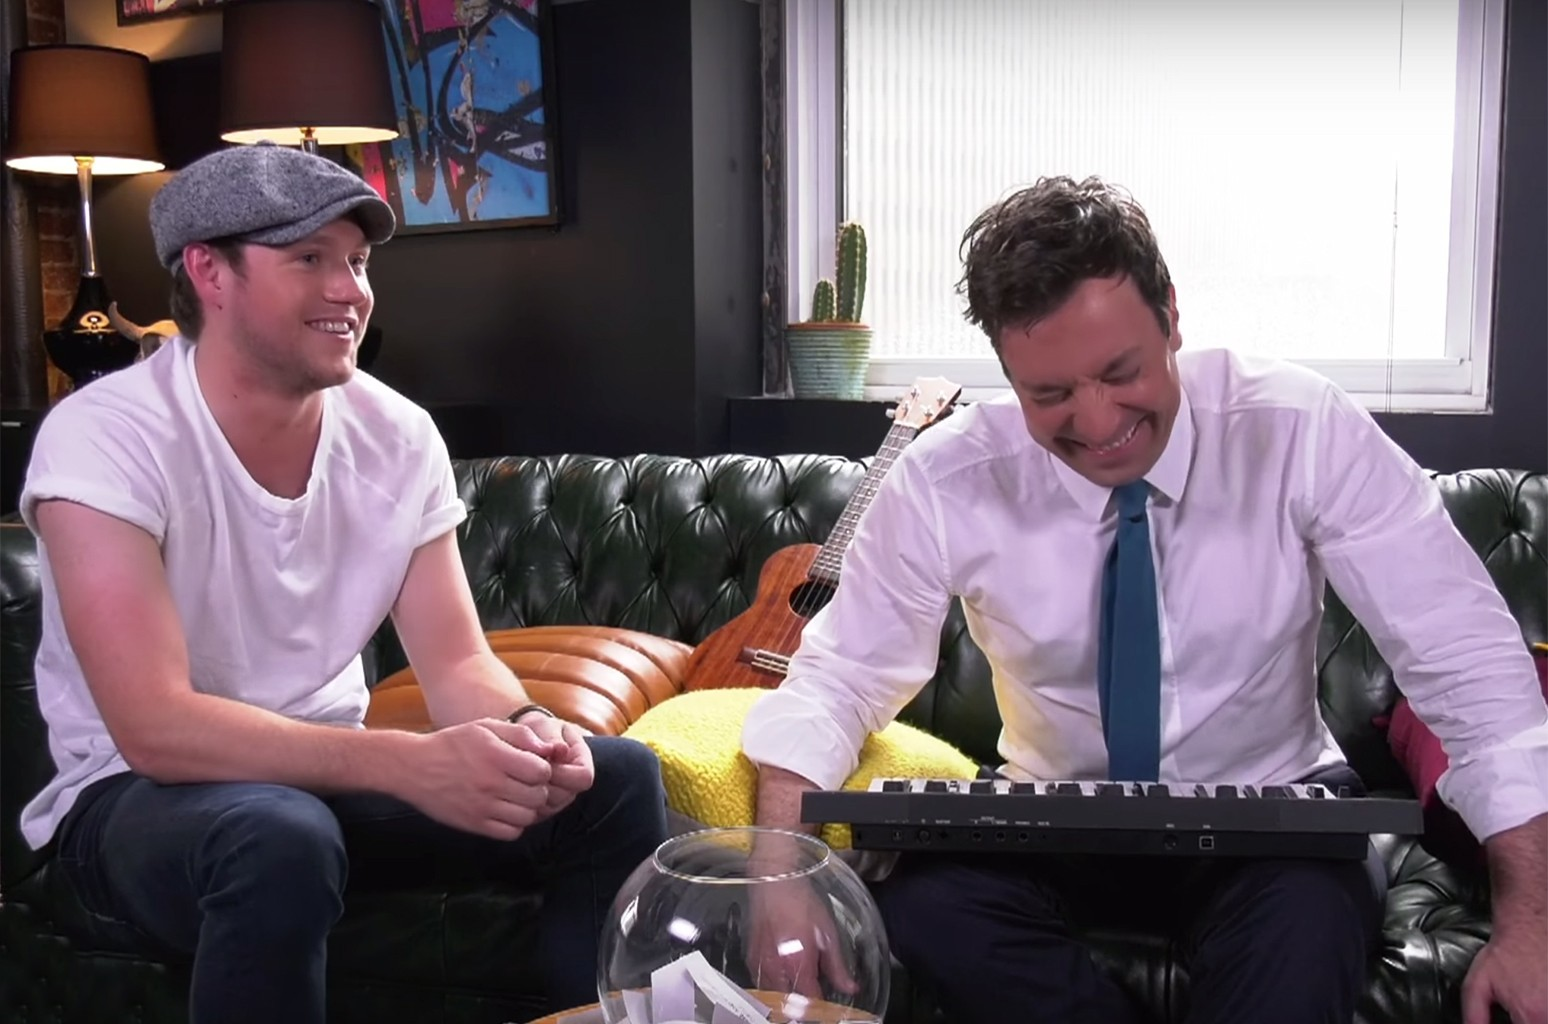 Niall Horan and Jimmy Fallon play the Instant Song Challenge on The Tonight Show Starring Jimmy Fallon